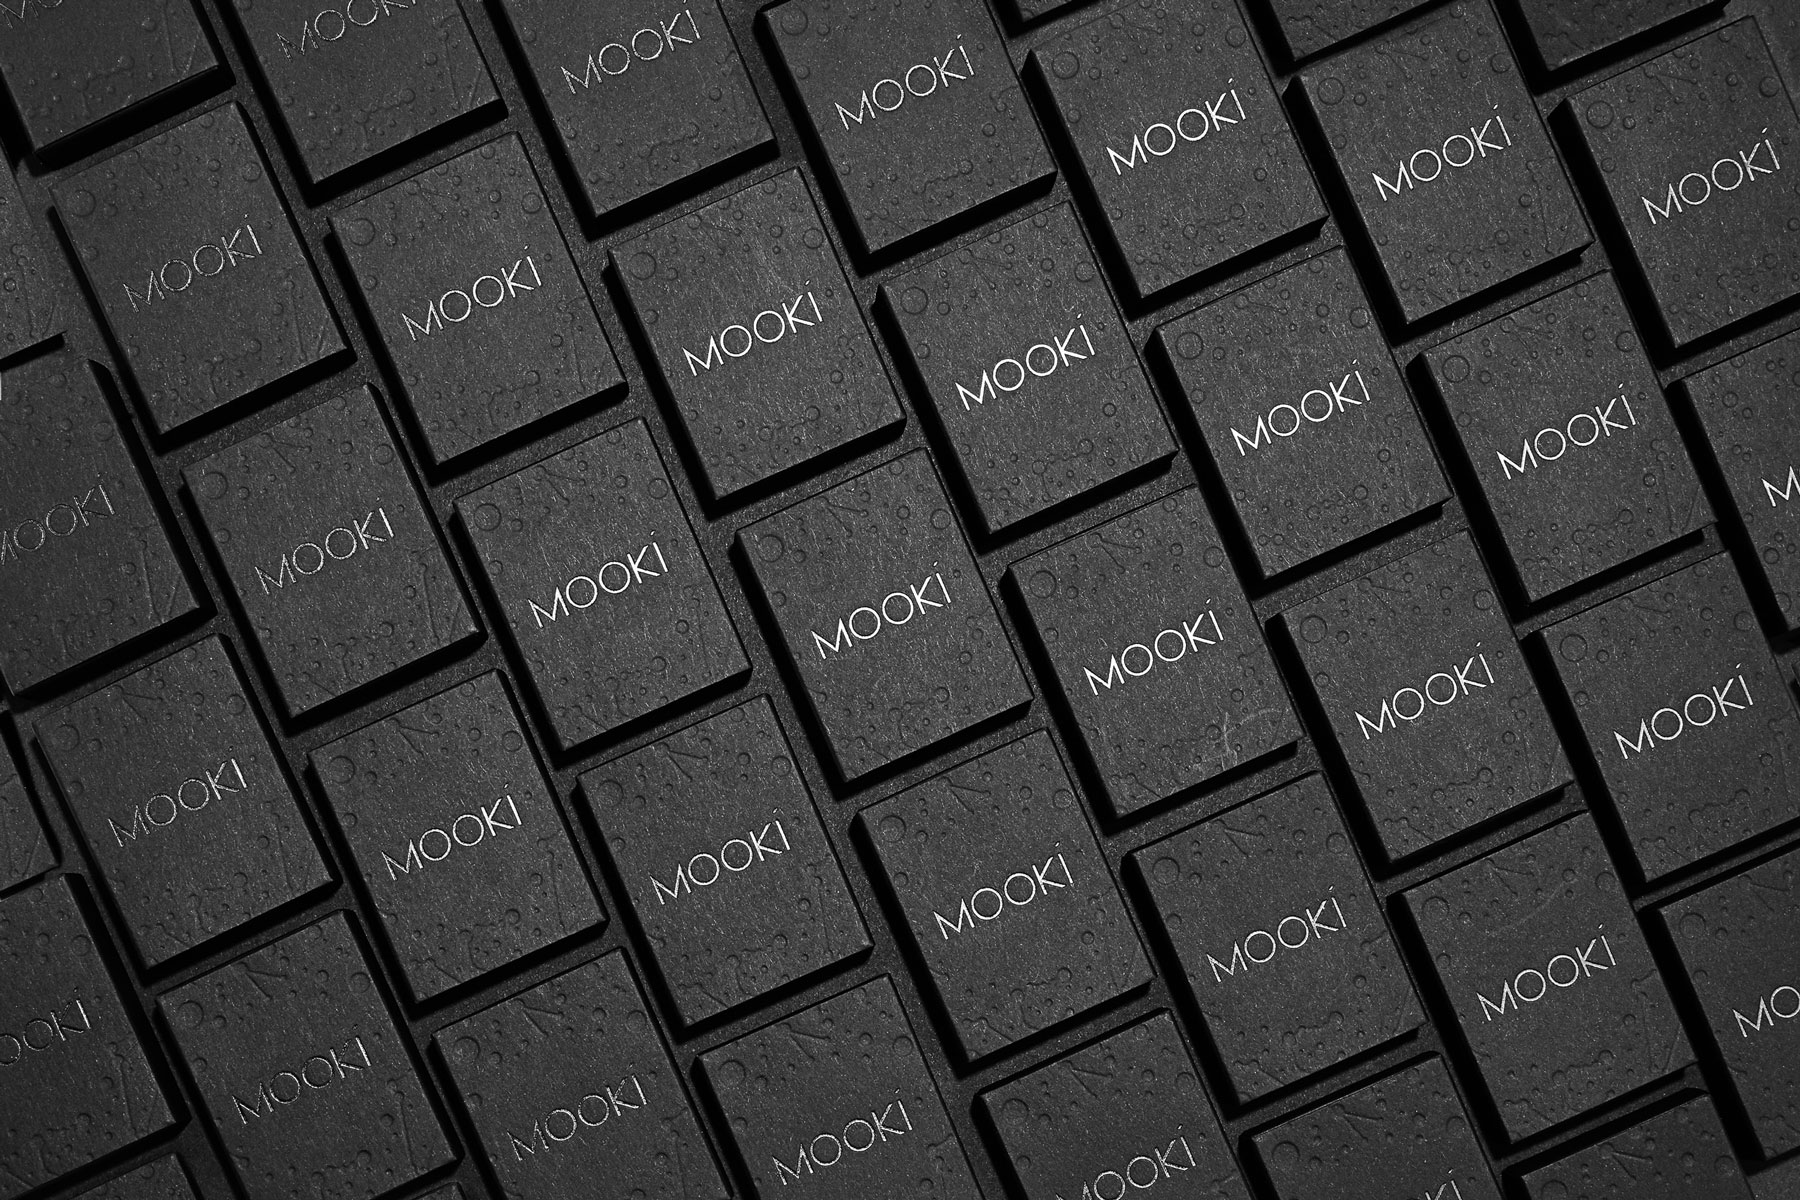 Letterpress and Foil Packaging for Mooki on Keaykolour Jet Black 1